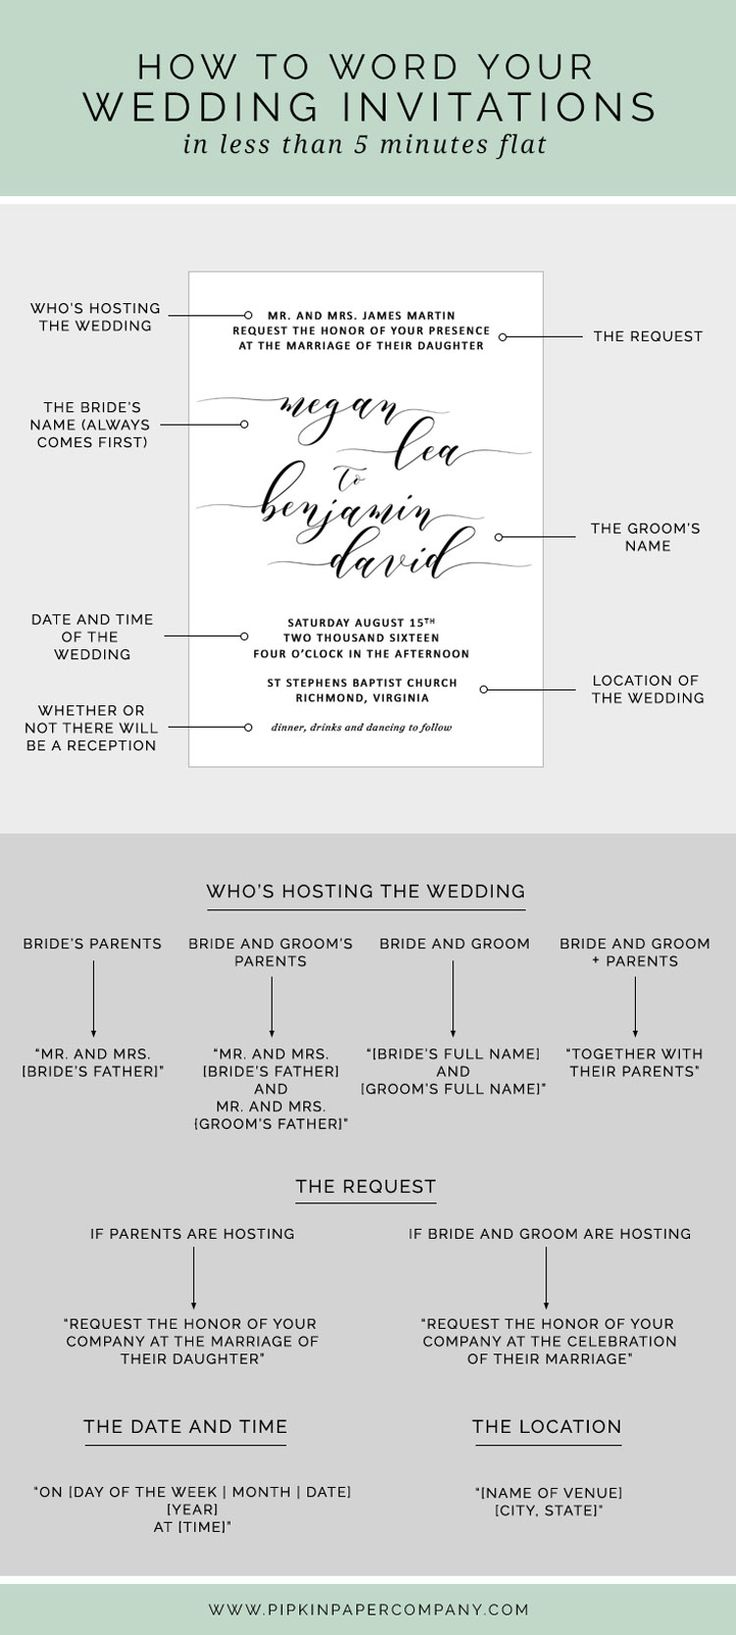 At A Loss For What To Say On Your Wedding Invitations Heres How Write